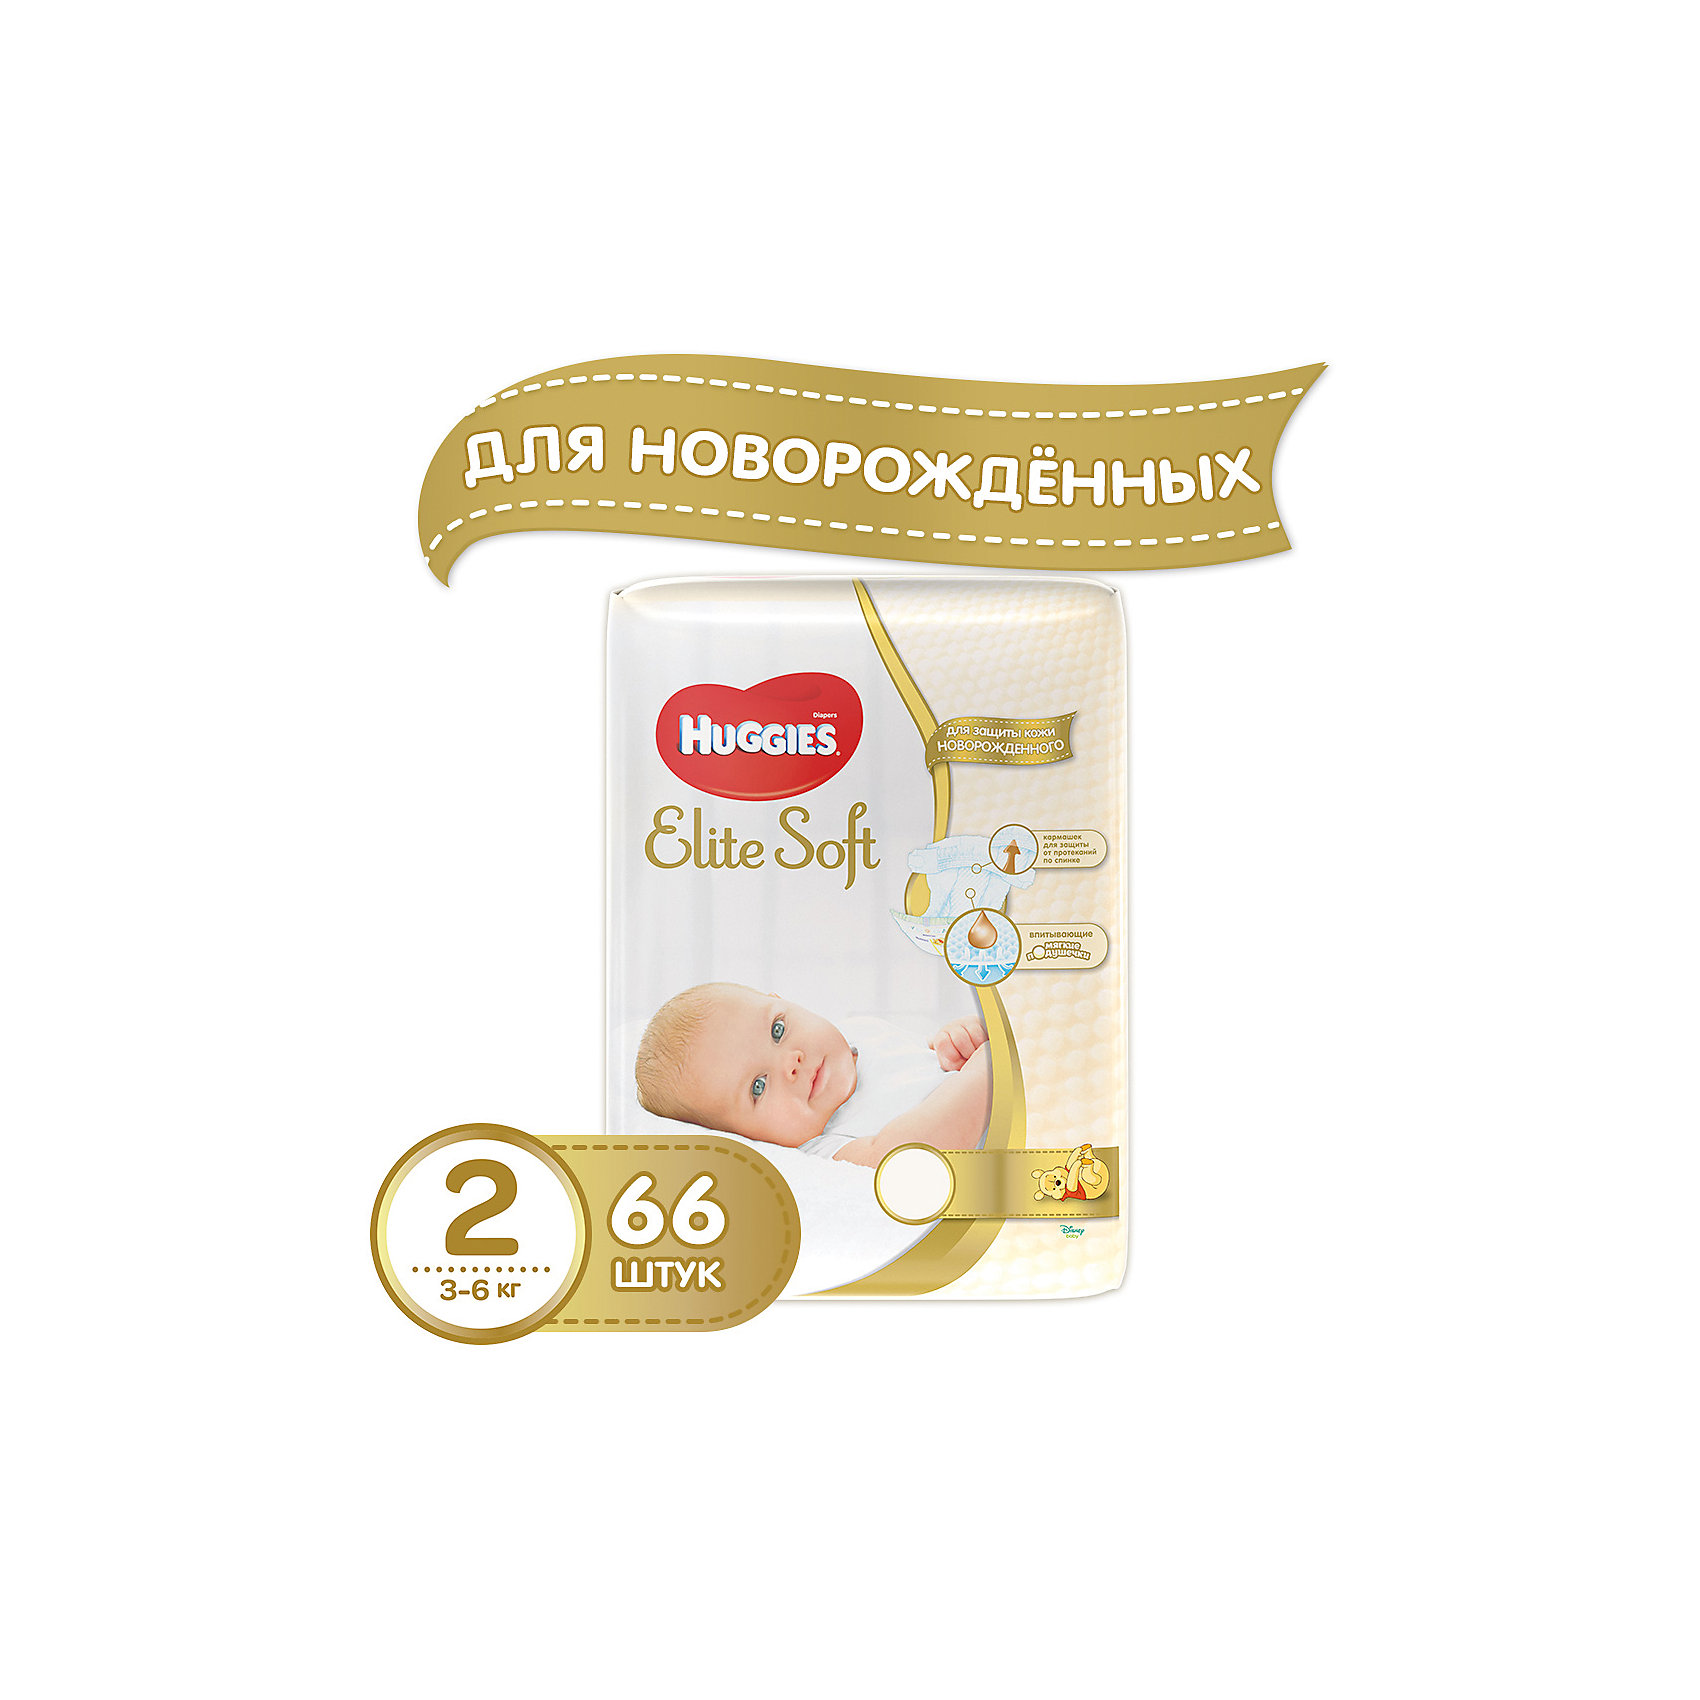 Подгузники Huggies Elite Soft 2, 4-7кг, 66 шт.